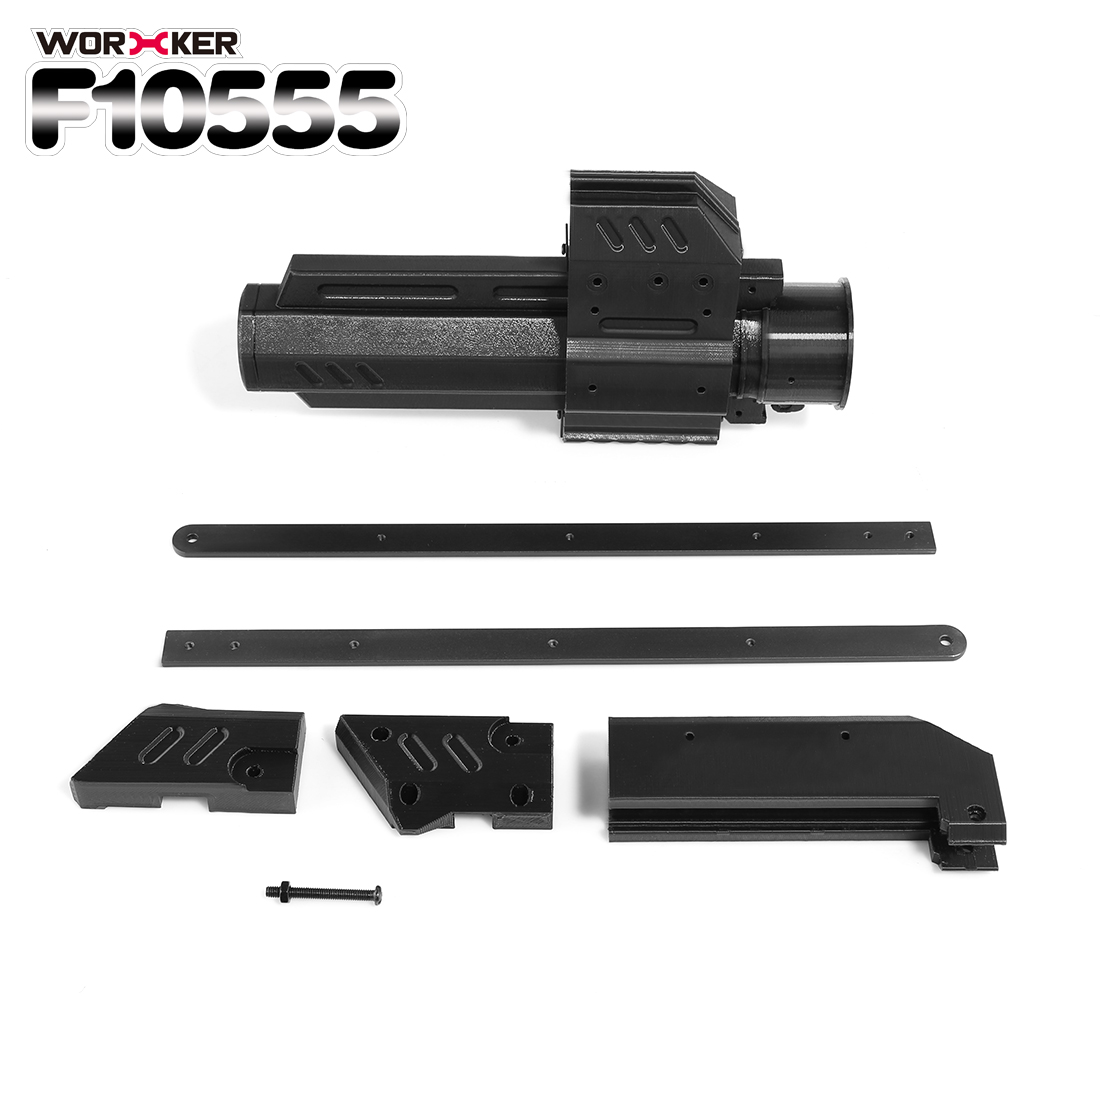 WORKER f10555 3D Printing Pull-down Kit for Nerf Rival Apollo XV-700 - Black цена 2017